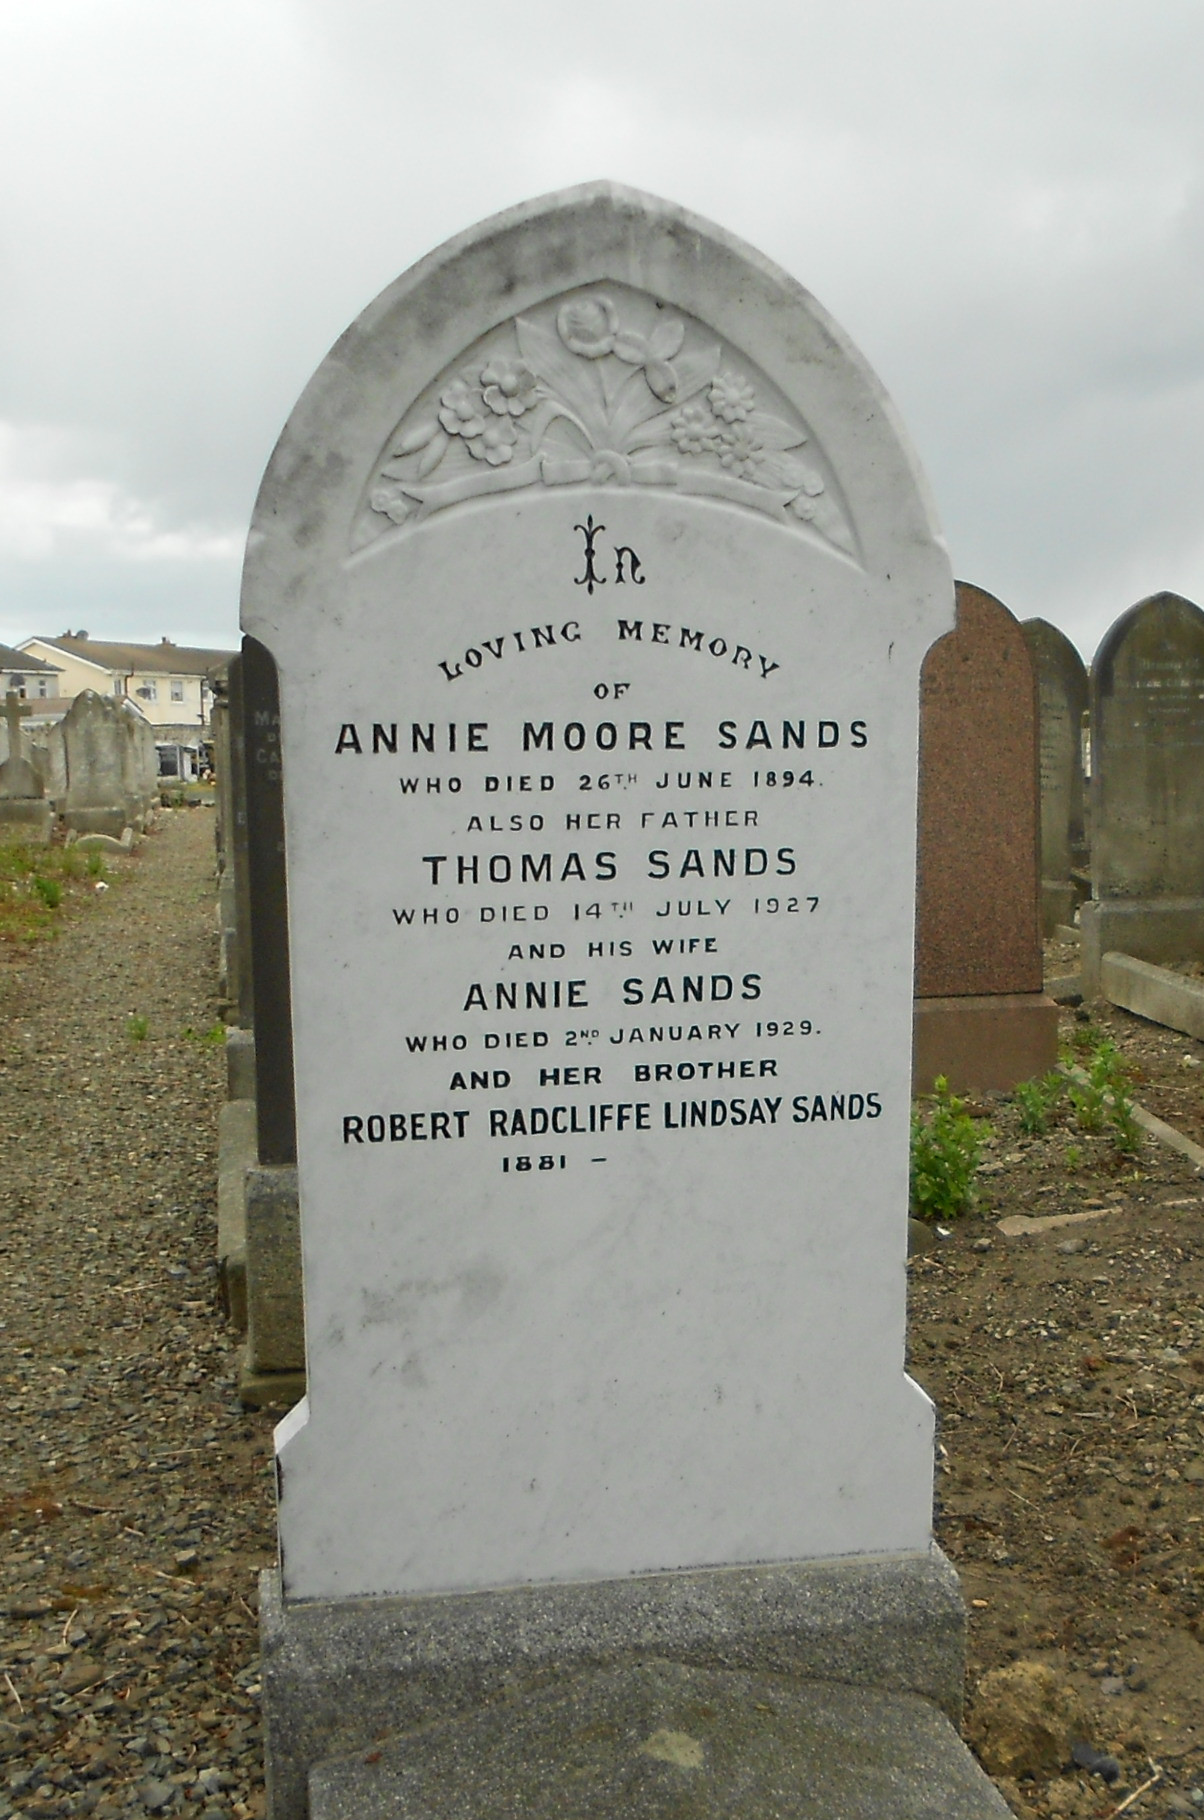 Headstone of Annie Moore Sands, Thomas Sands, Annie Sands and Robert Radcliffe Sands